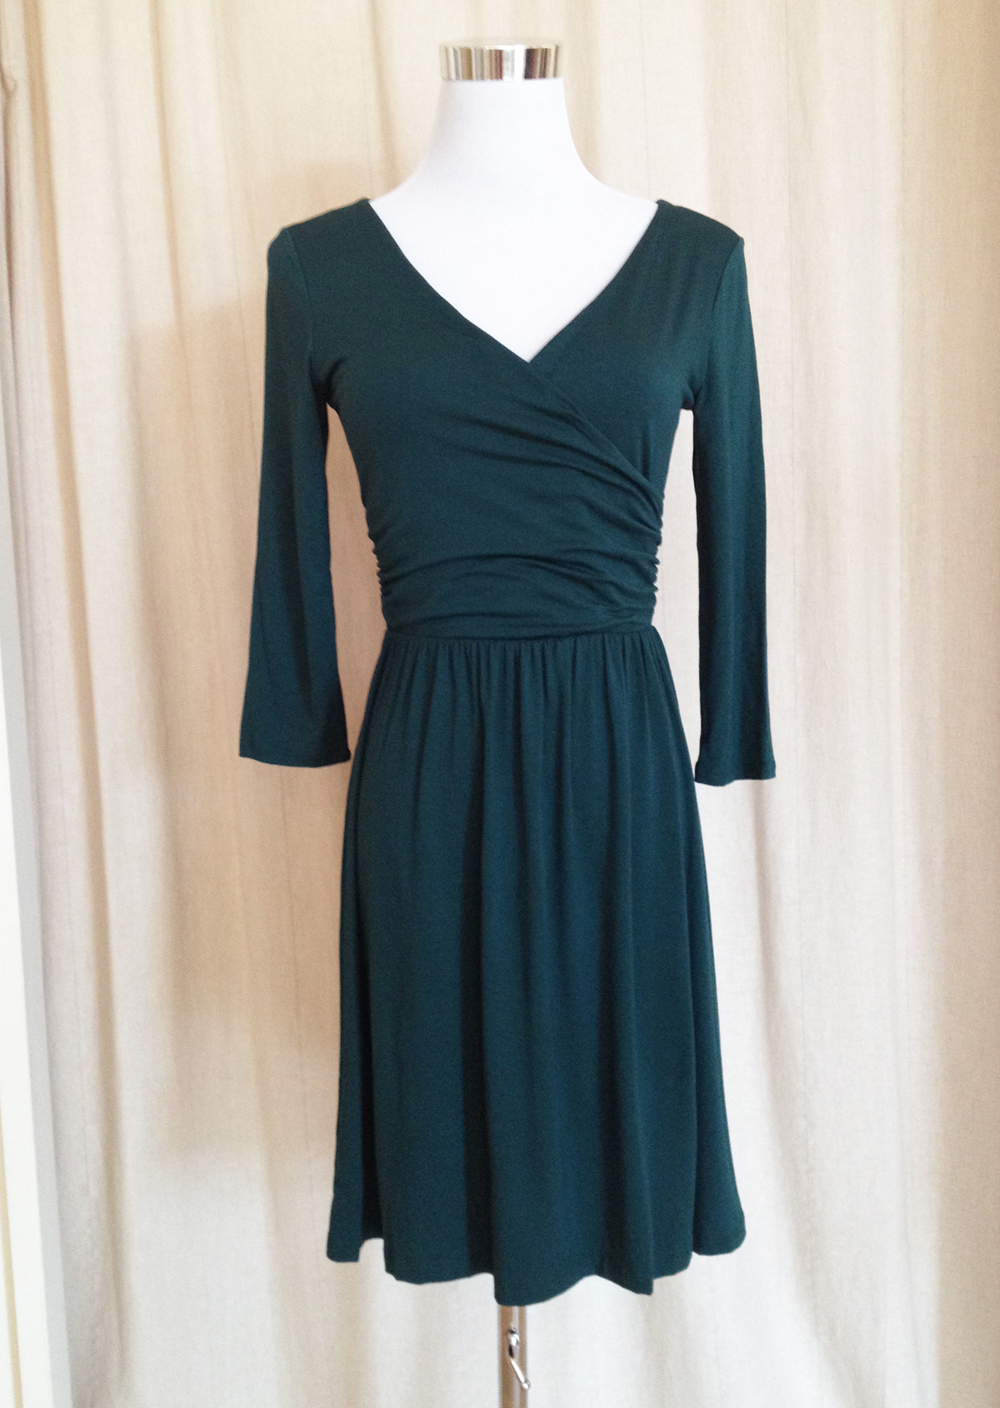 Teal Green Jersey Wrap Dress